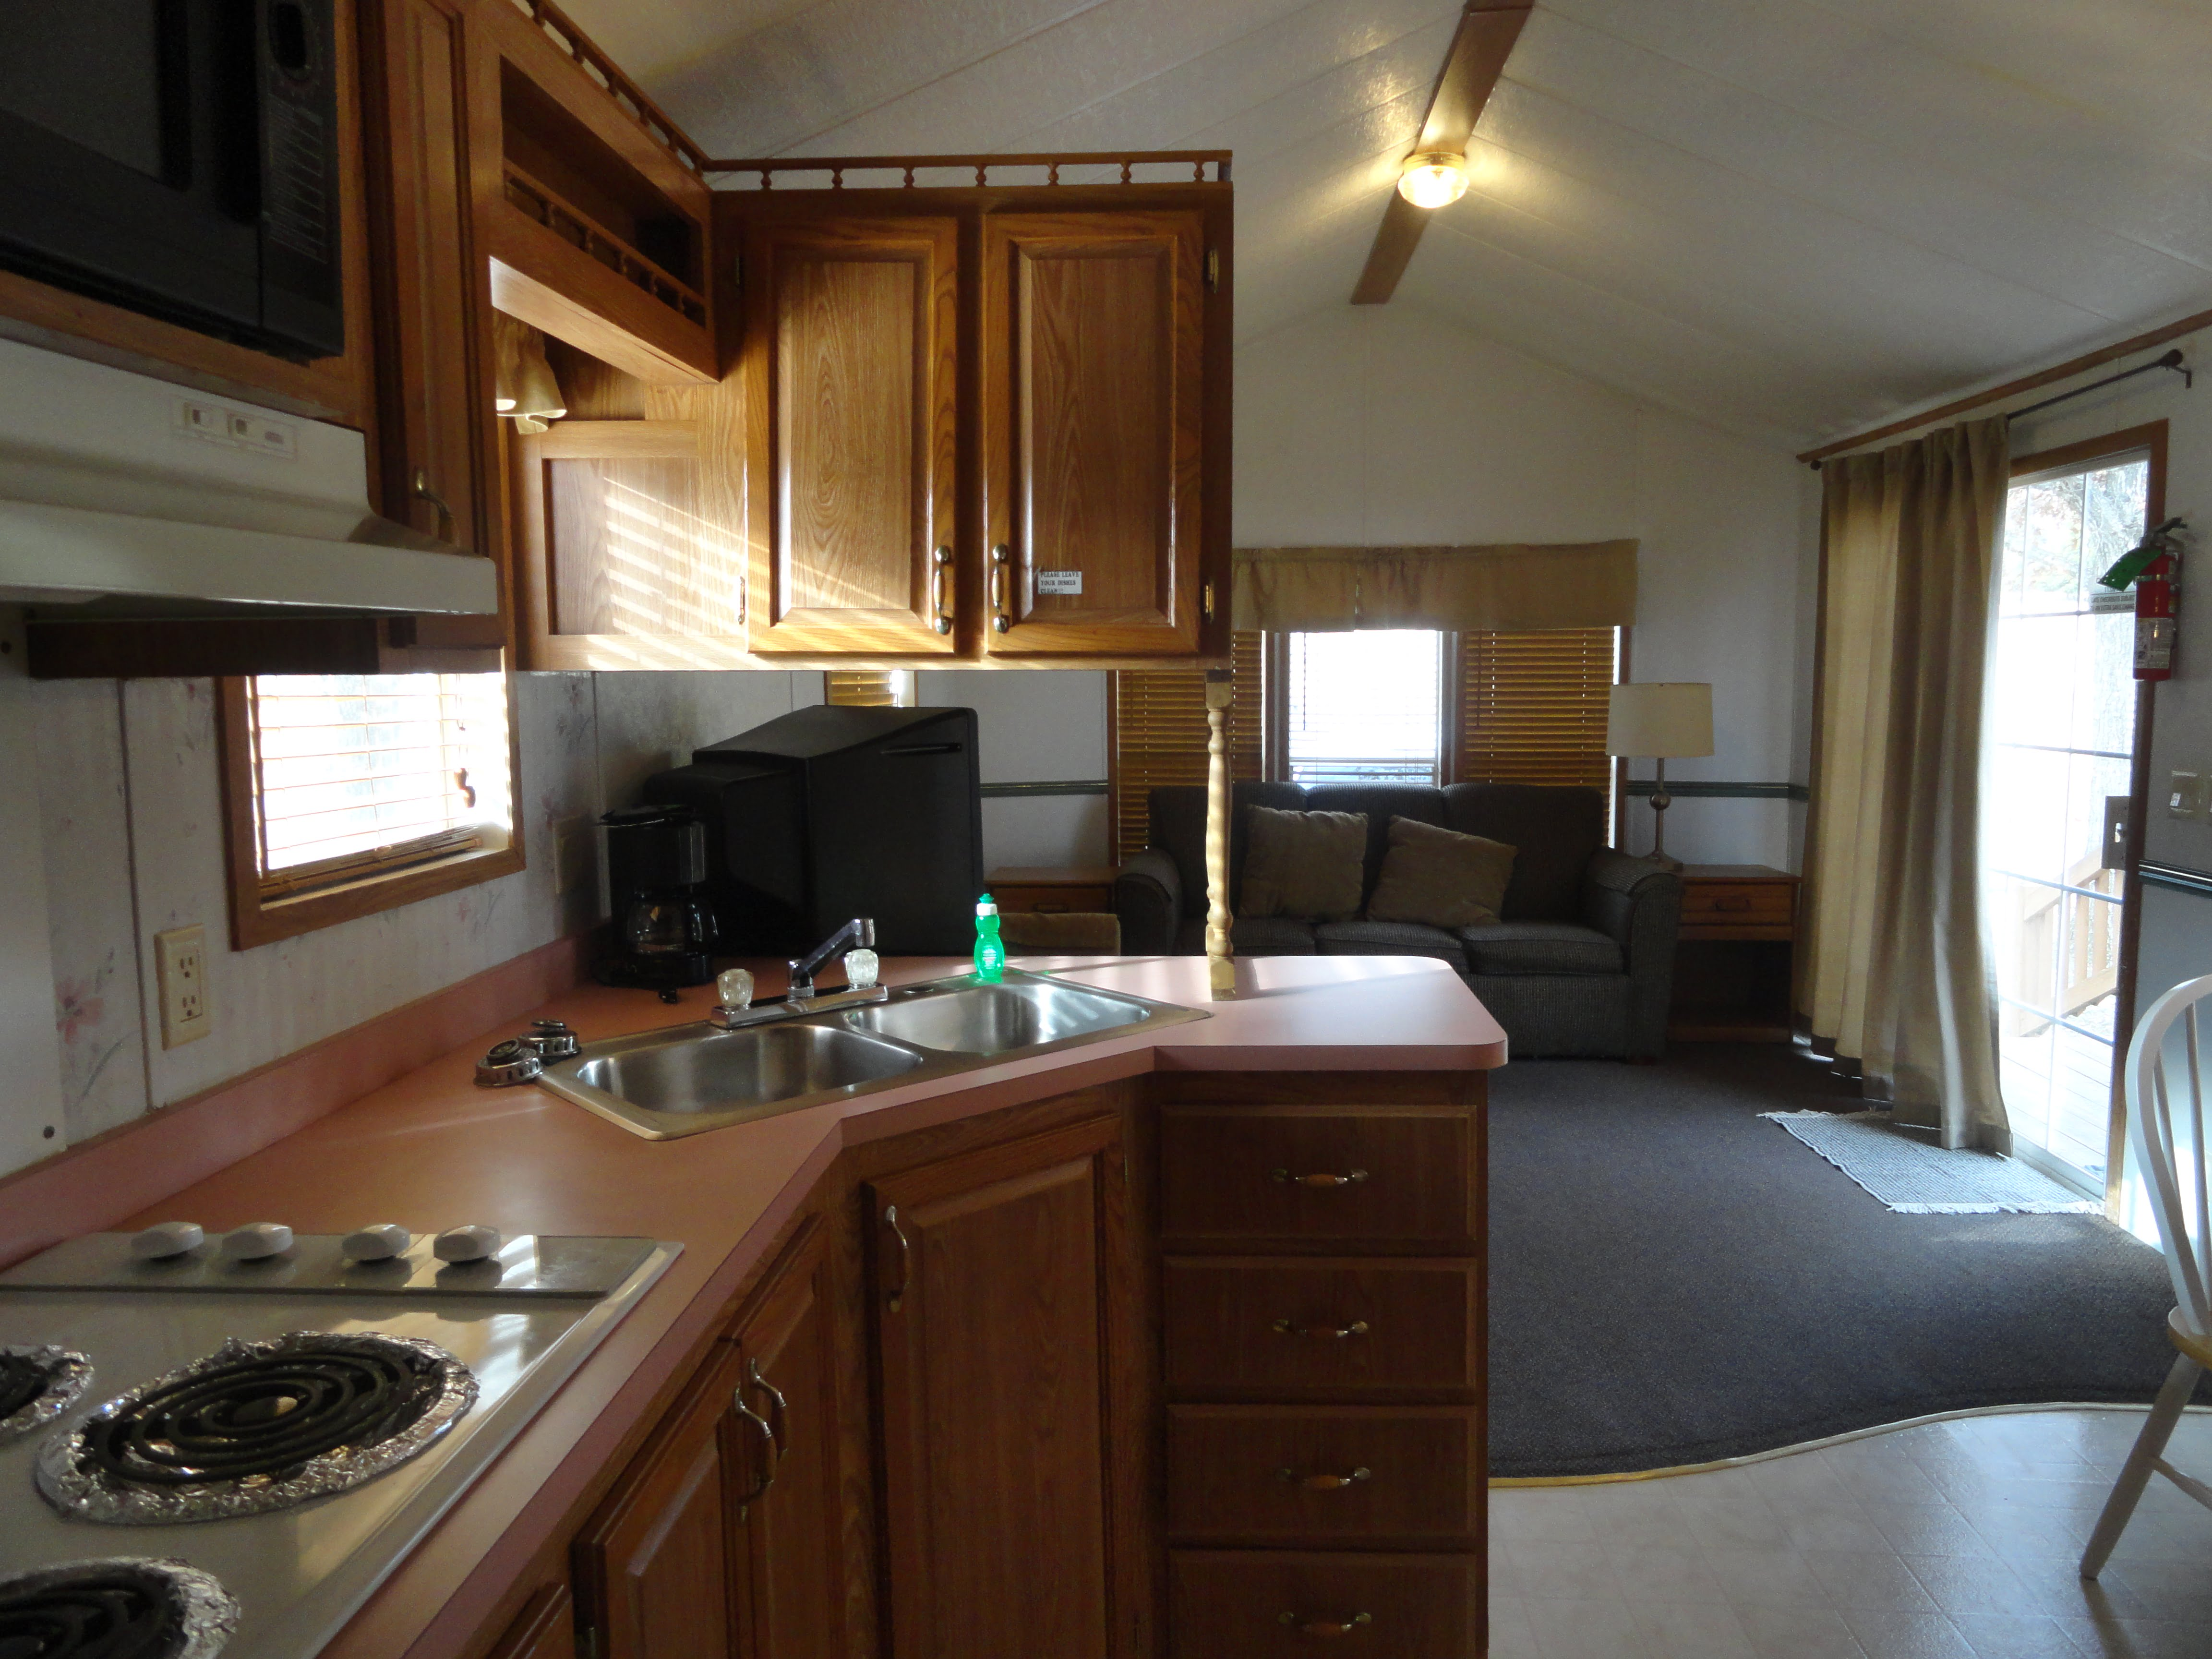 1 Bedroom Kit Living Room Treasure Lake Rv Resort